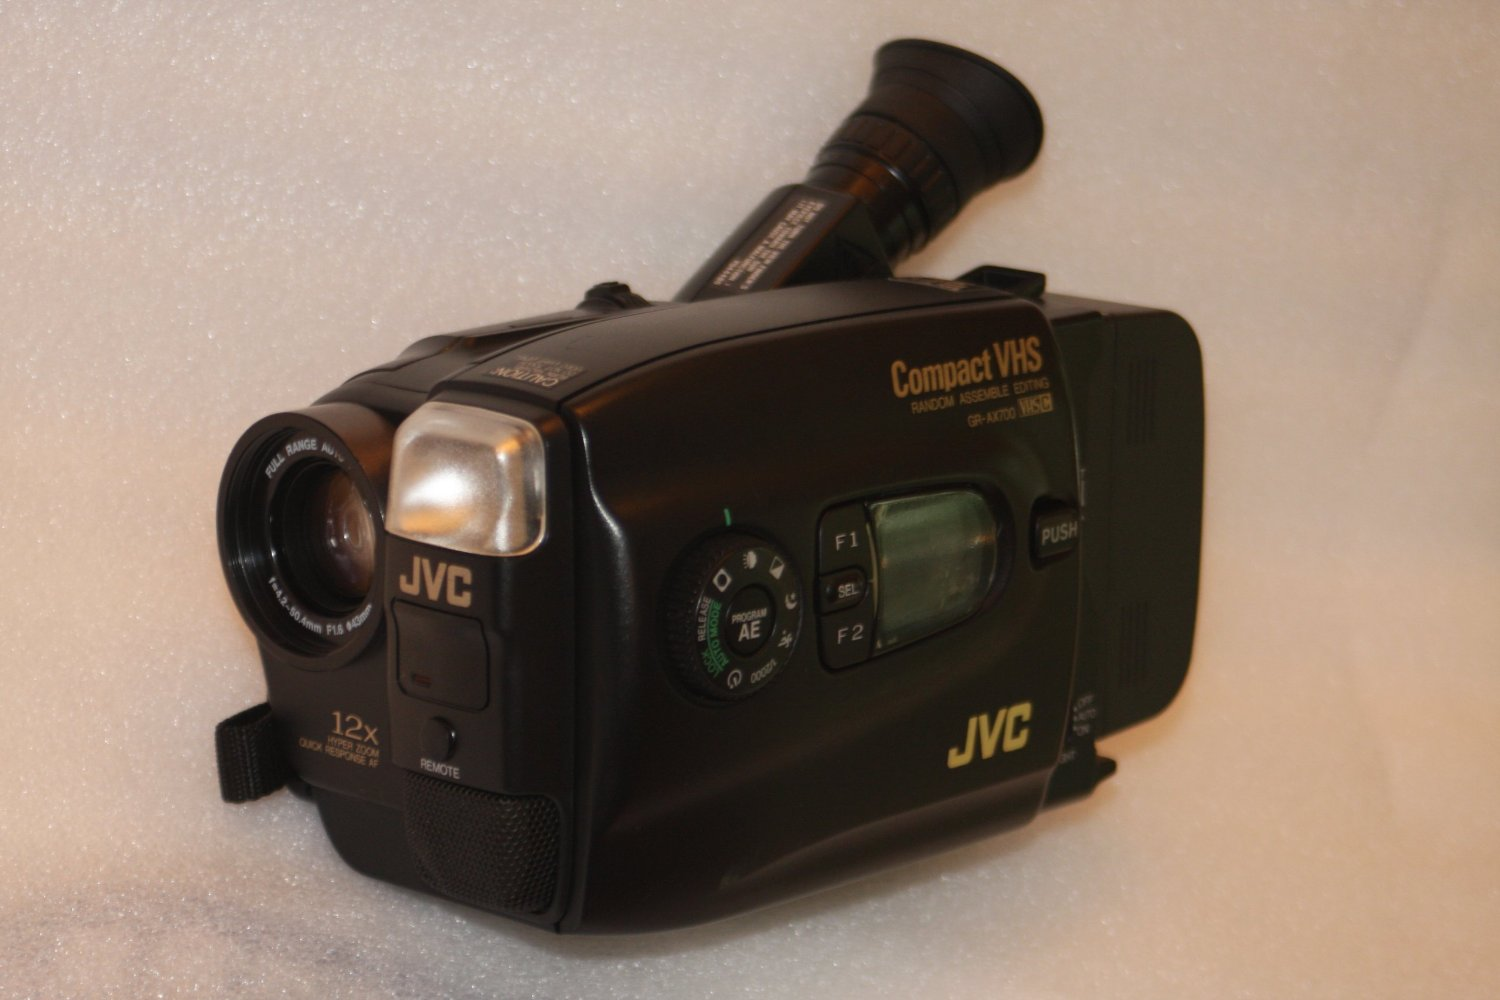 JVC GR-AX700U VHS-C Camcorder with 12x Hyper Zoom and Color Viewfinder